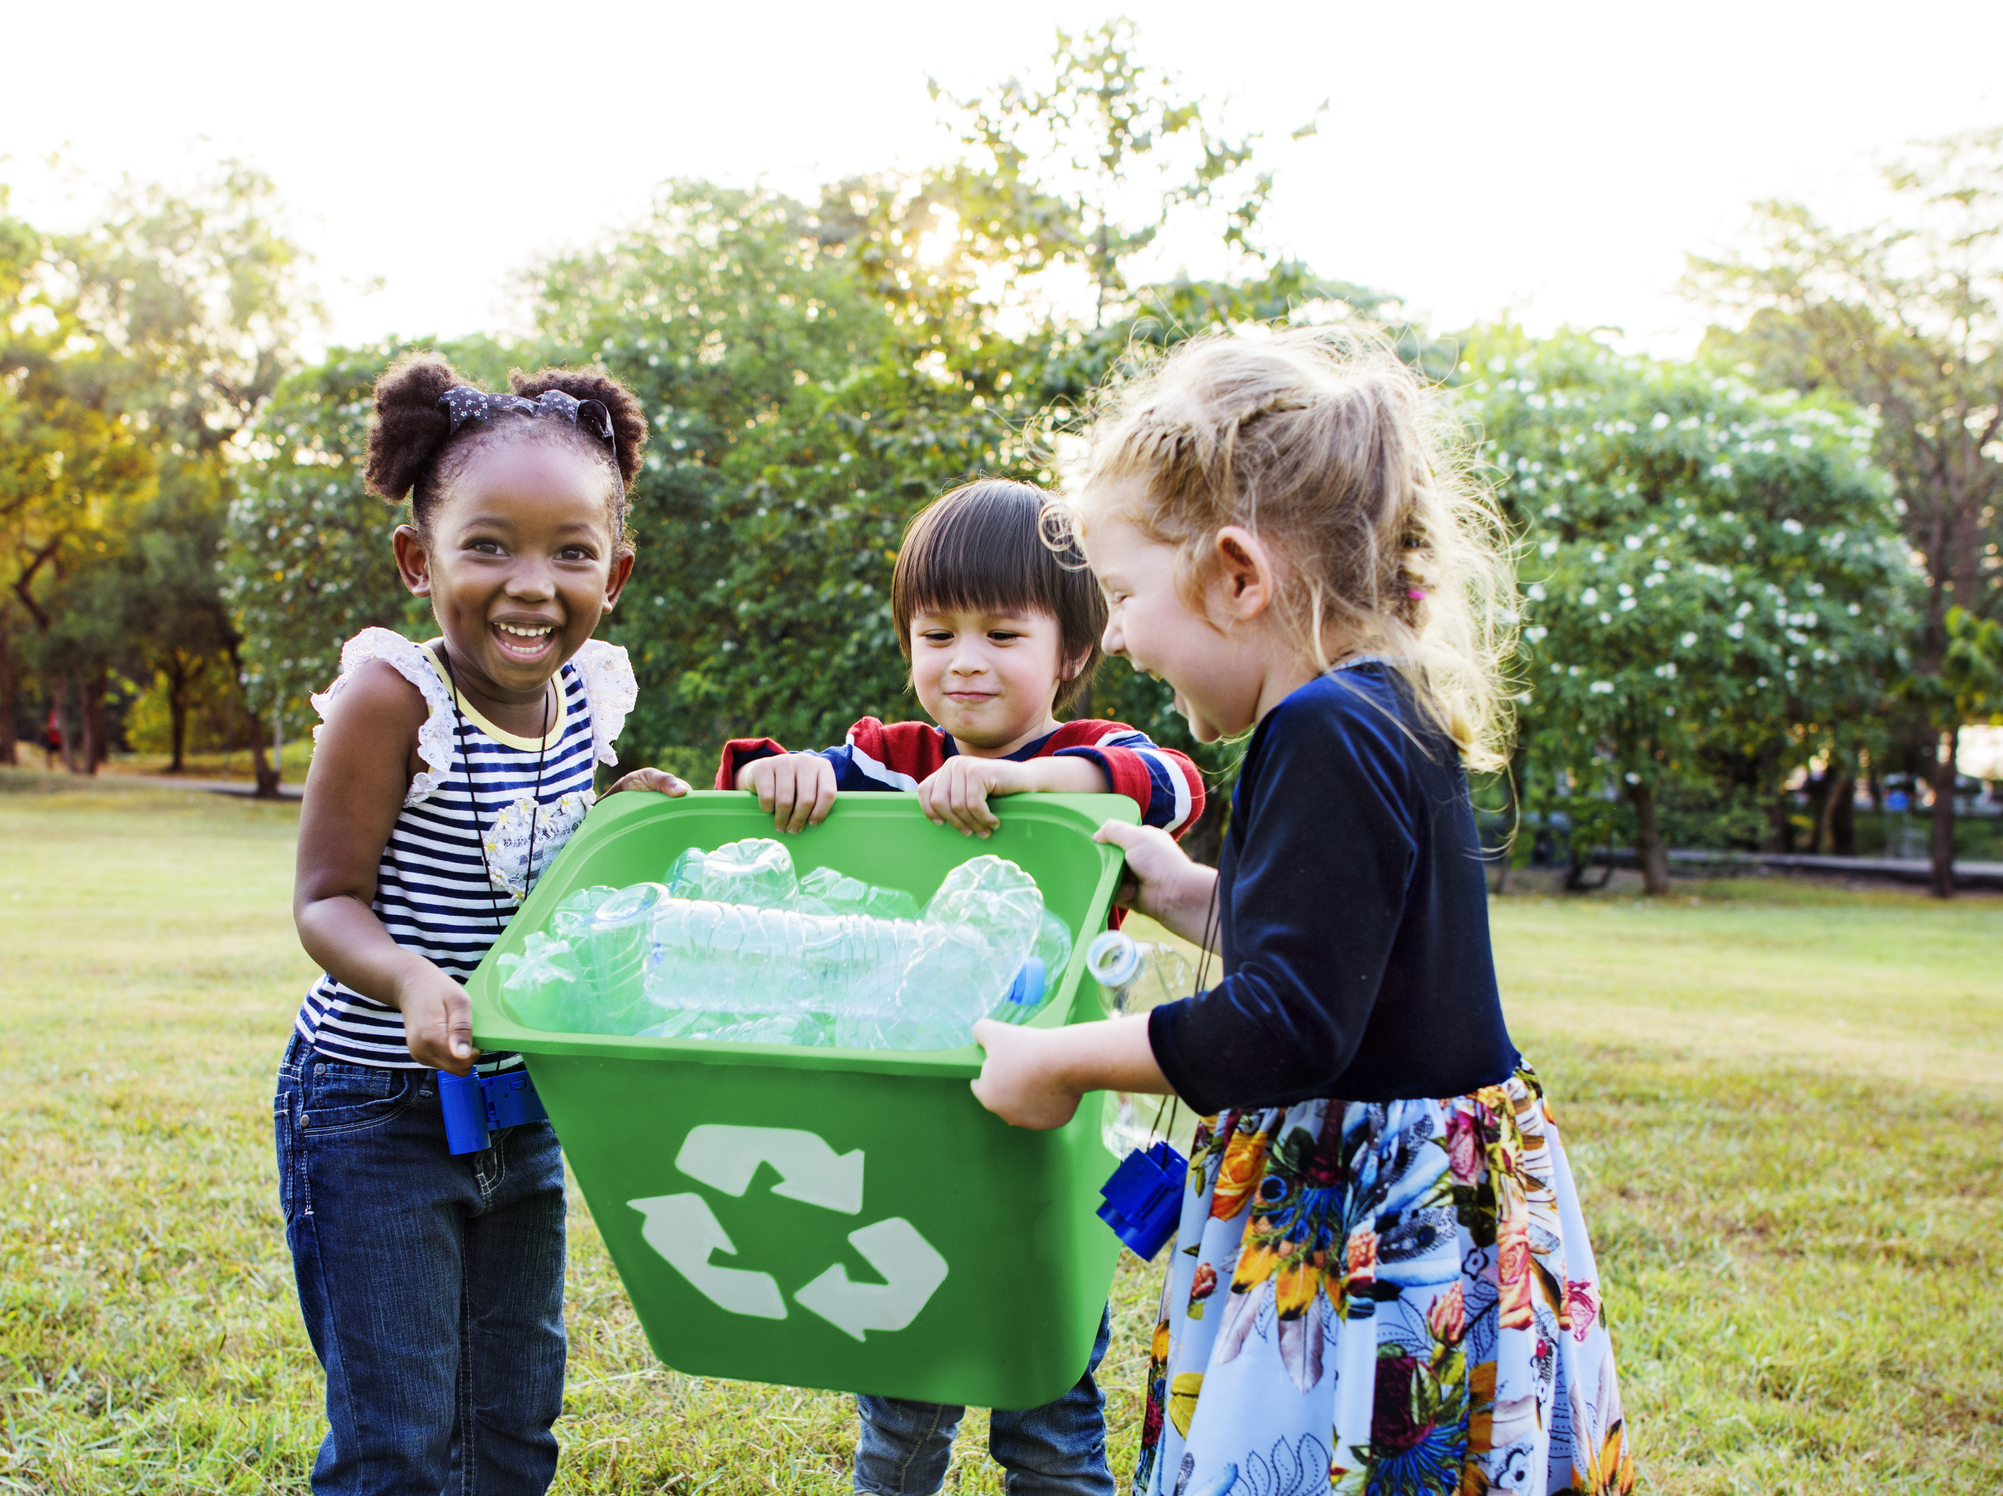 Three children laughing and holding a recycling bin.